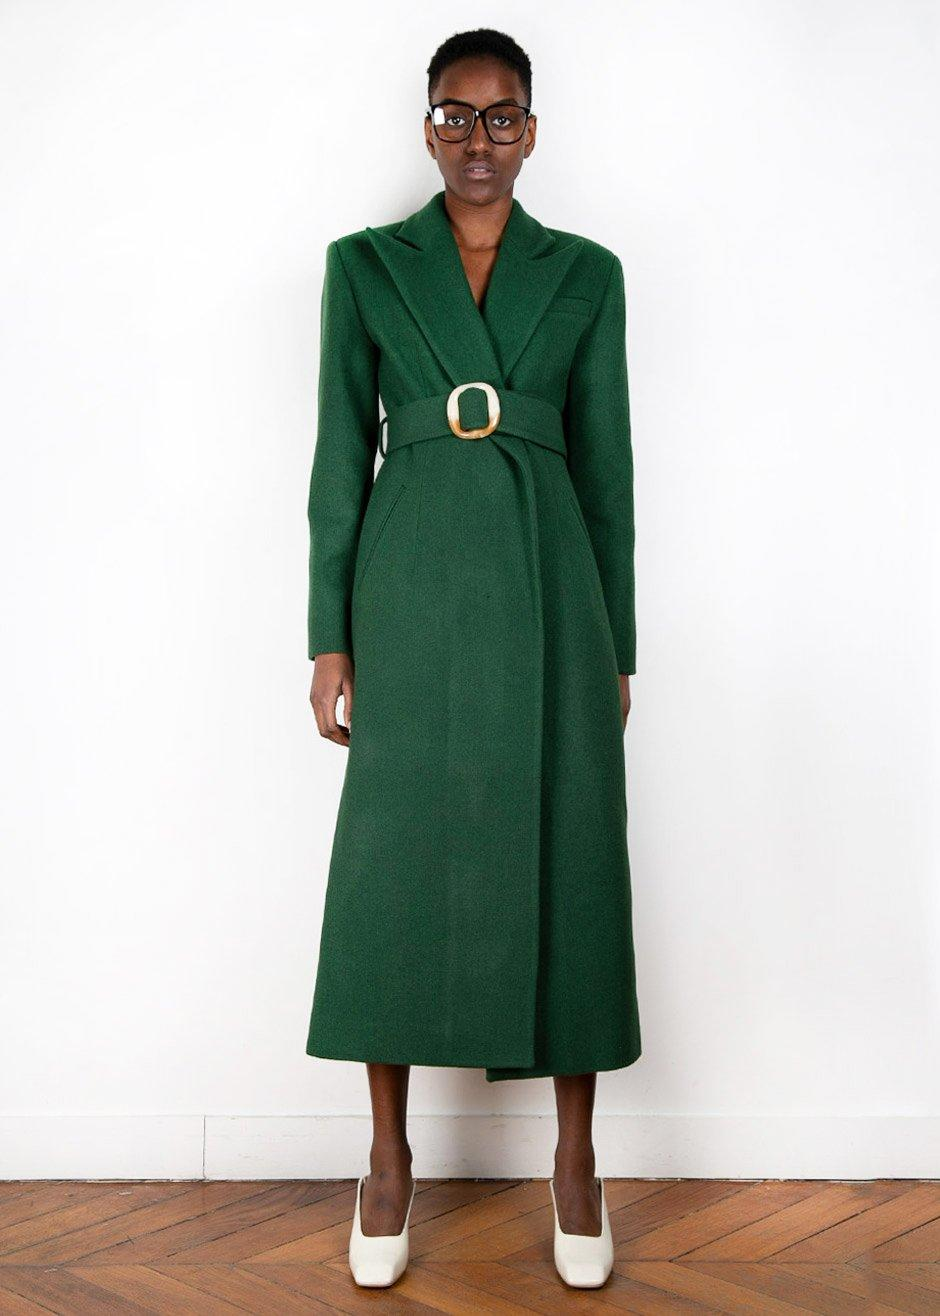 Materiel Tblisi Forest Green Wool Blend Belted Coat (Credit: The Frankie Shop)